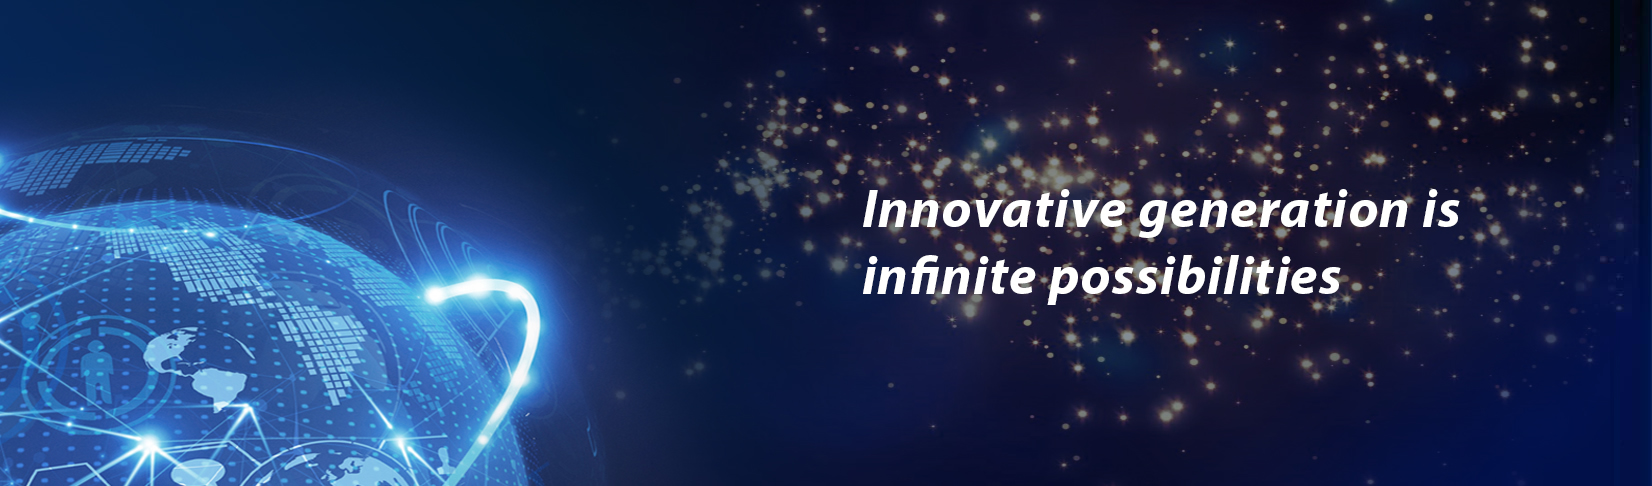 Innovative generation isinfinite possibilities